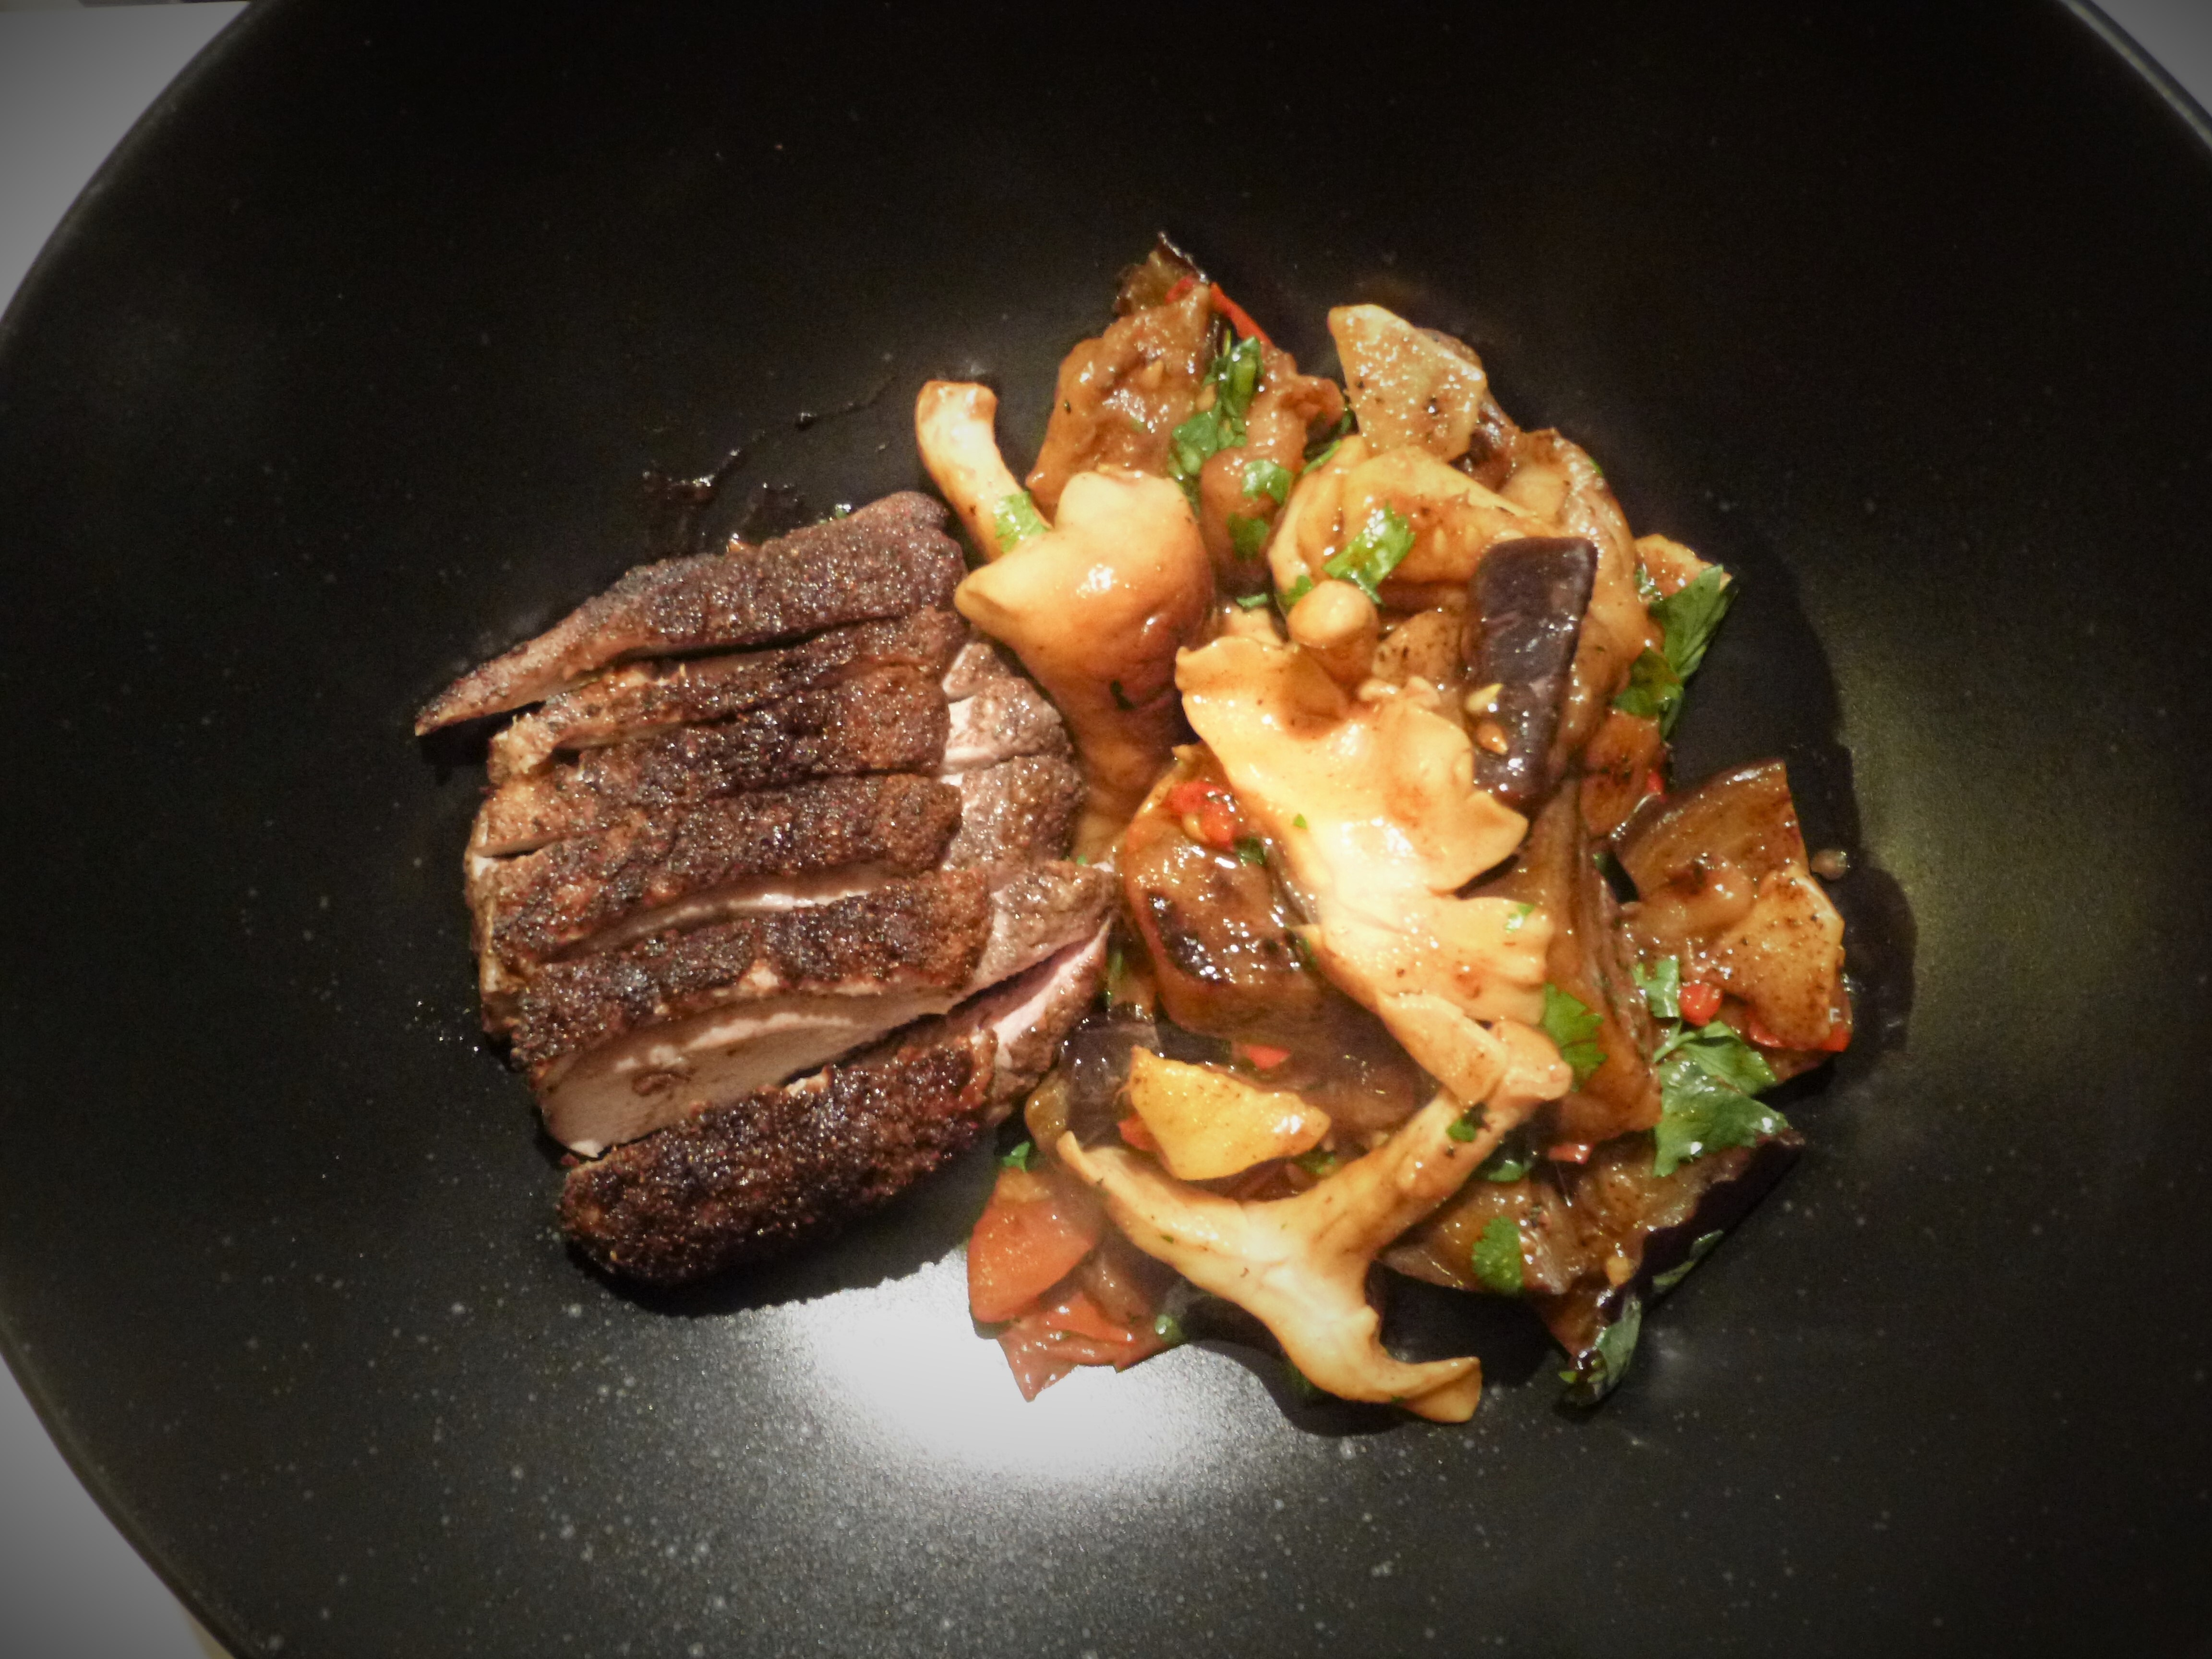 Five Spice Pan Fried Duck Breast with Shitake Mushroom, Aubergine and Fresh Tomato Oyster Sauce Stir Fry Recipe